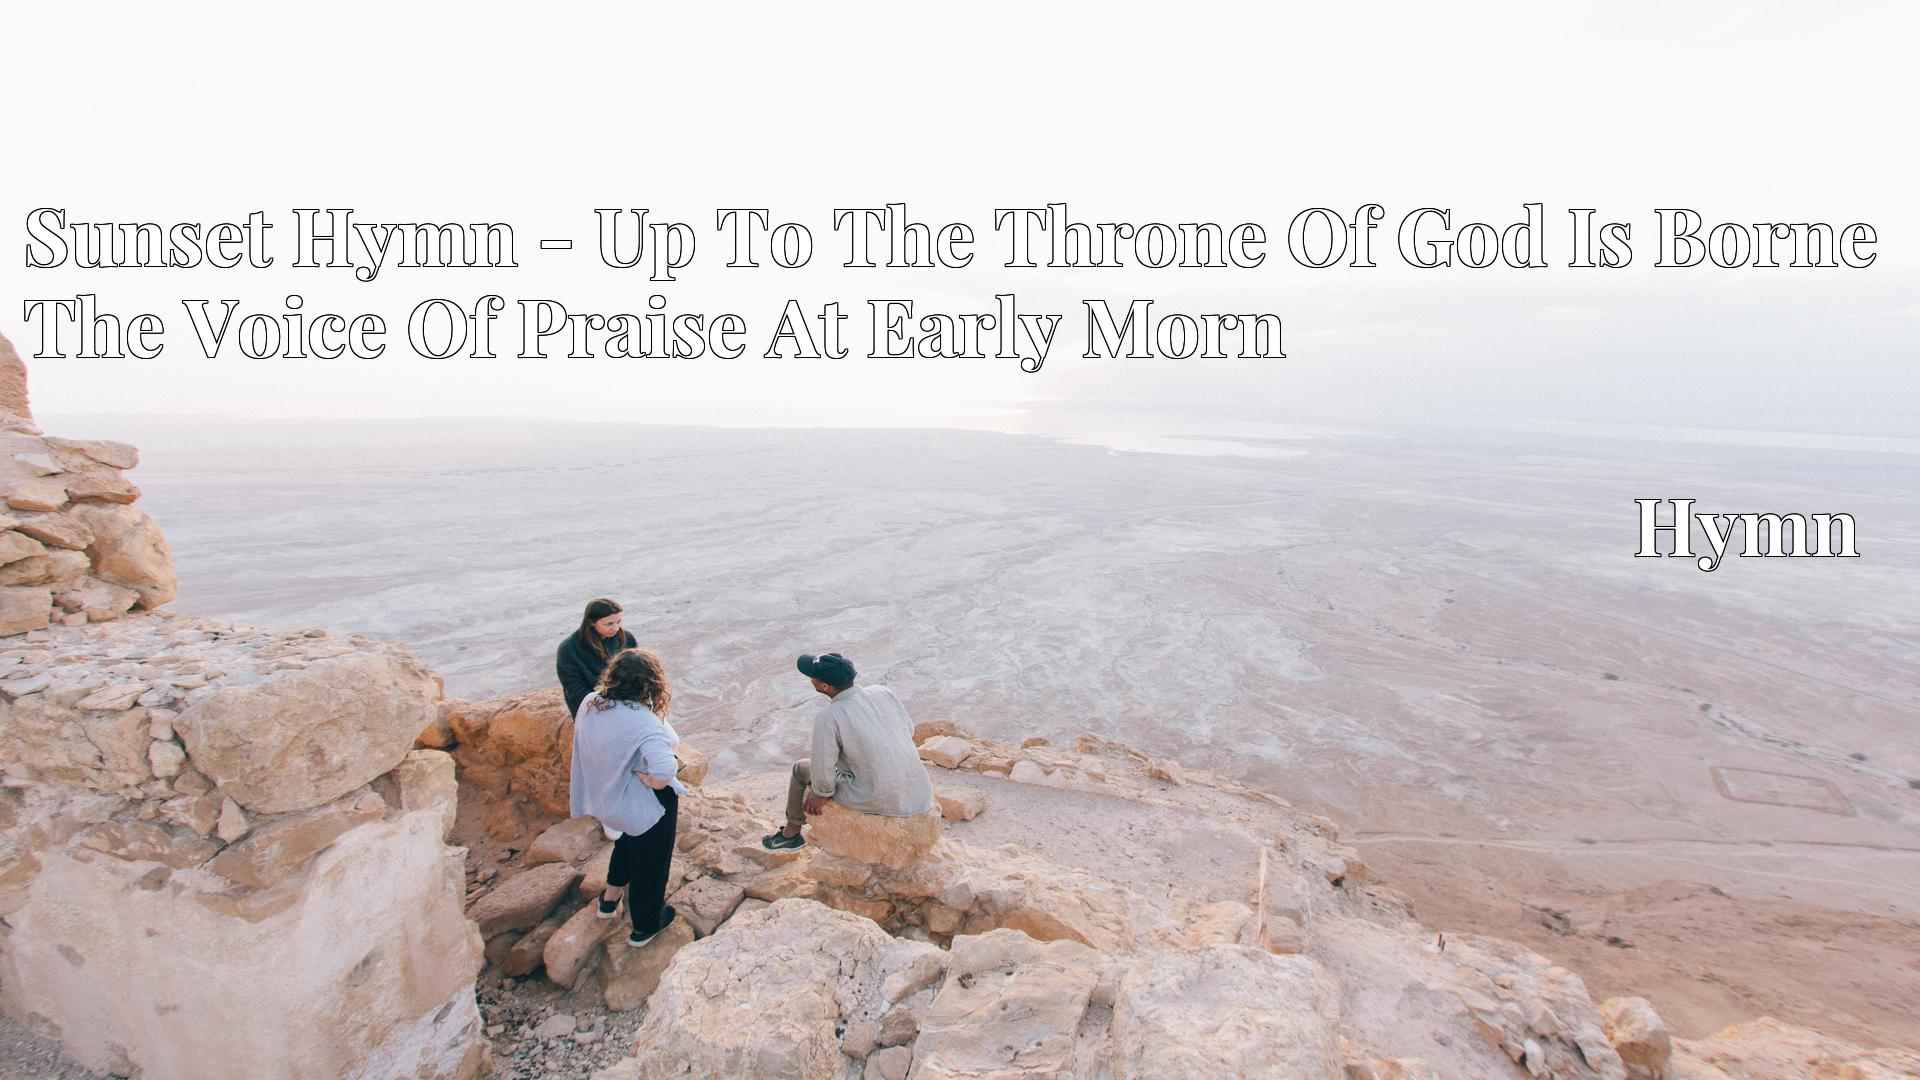 Sunset Hymn - Up To The Throne Of God Is Borne The Voice Of Praise At Early Morn - Hymn